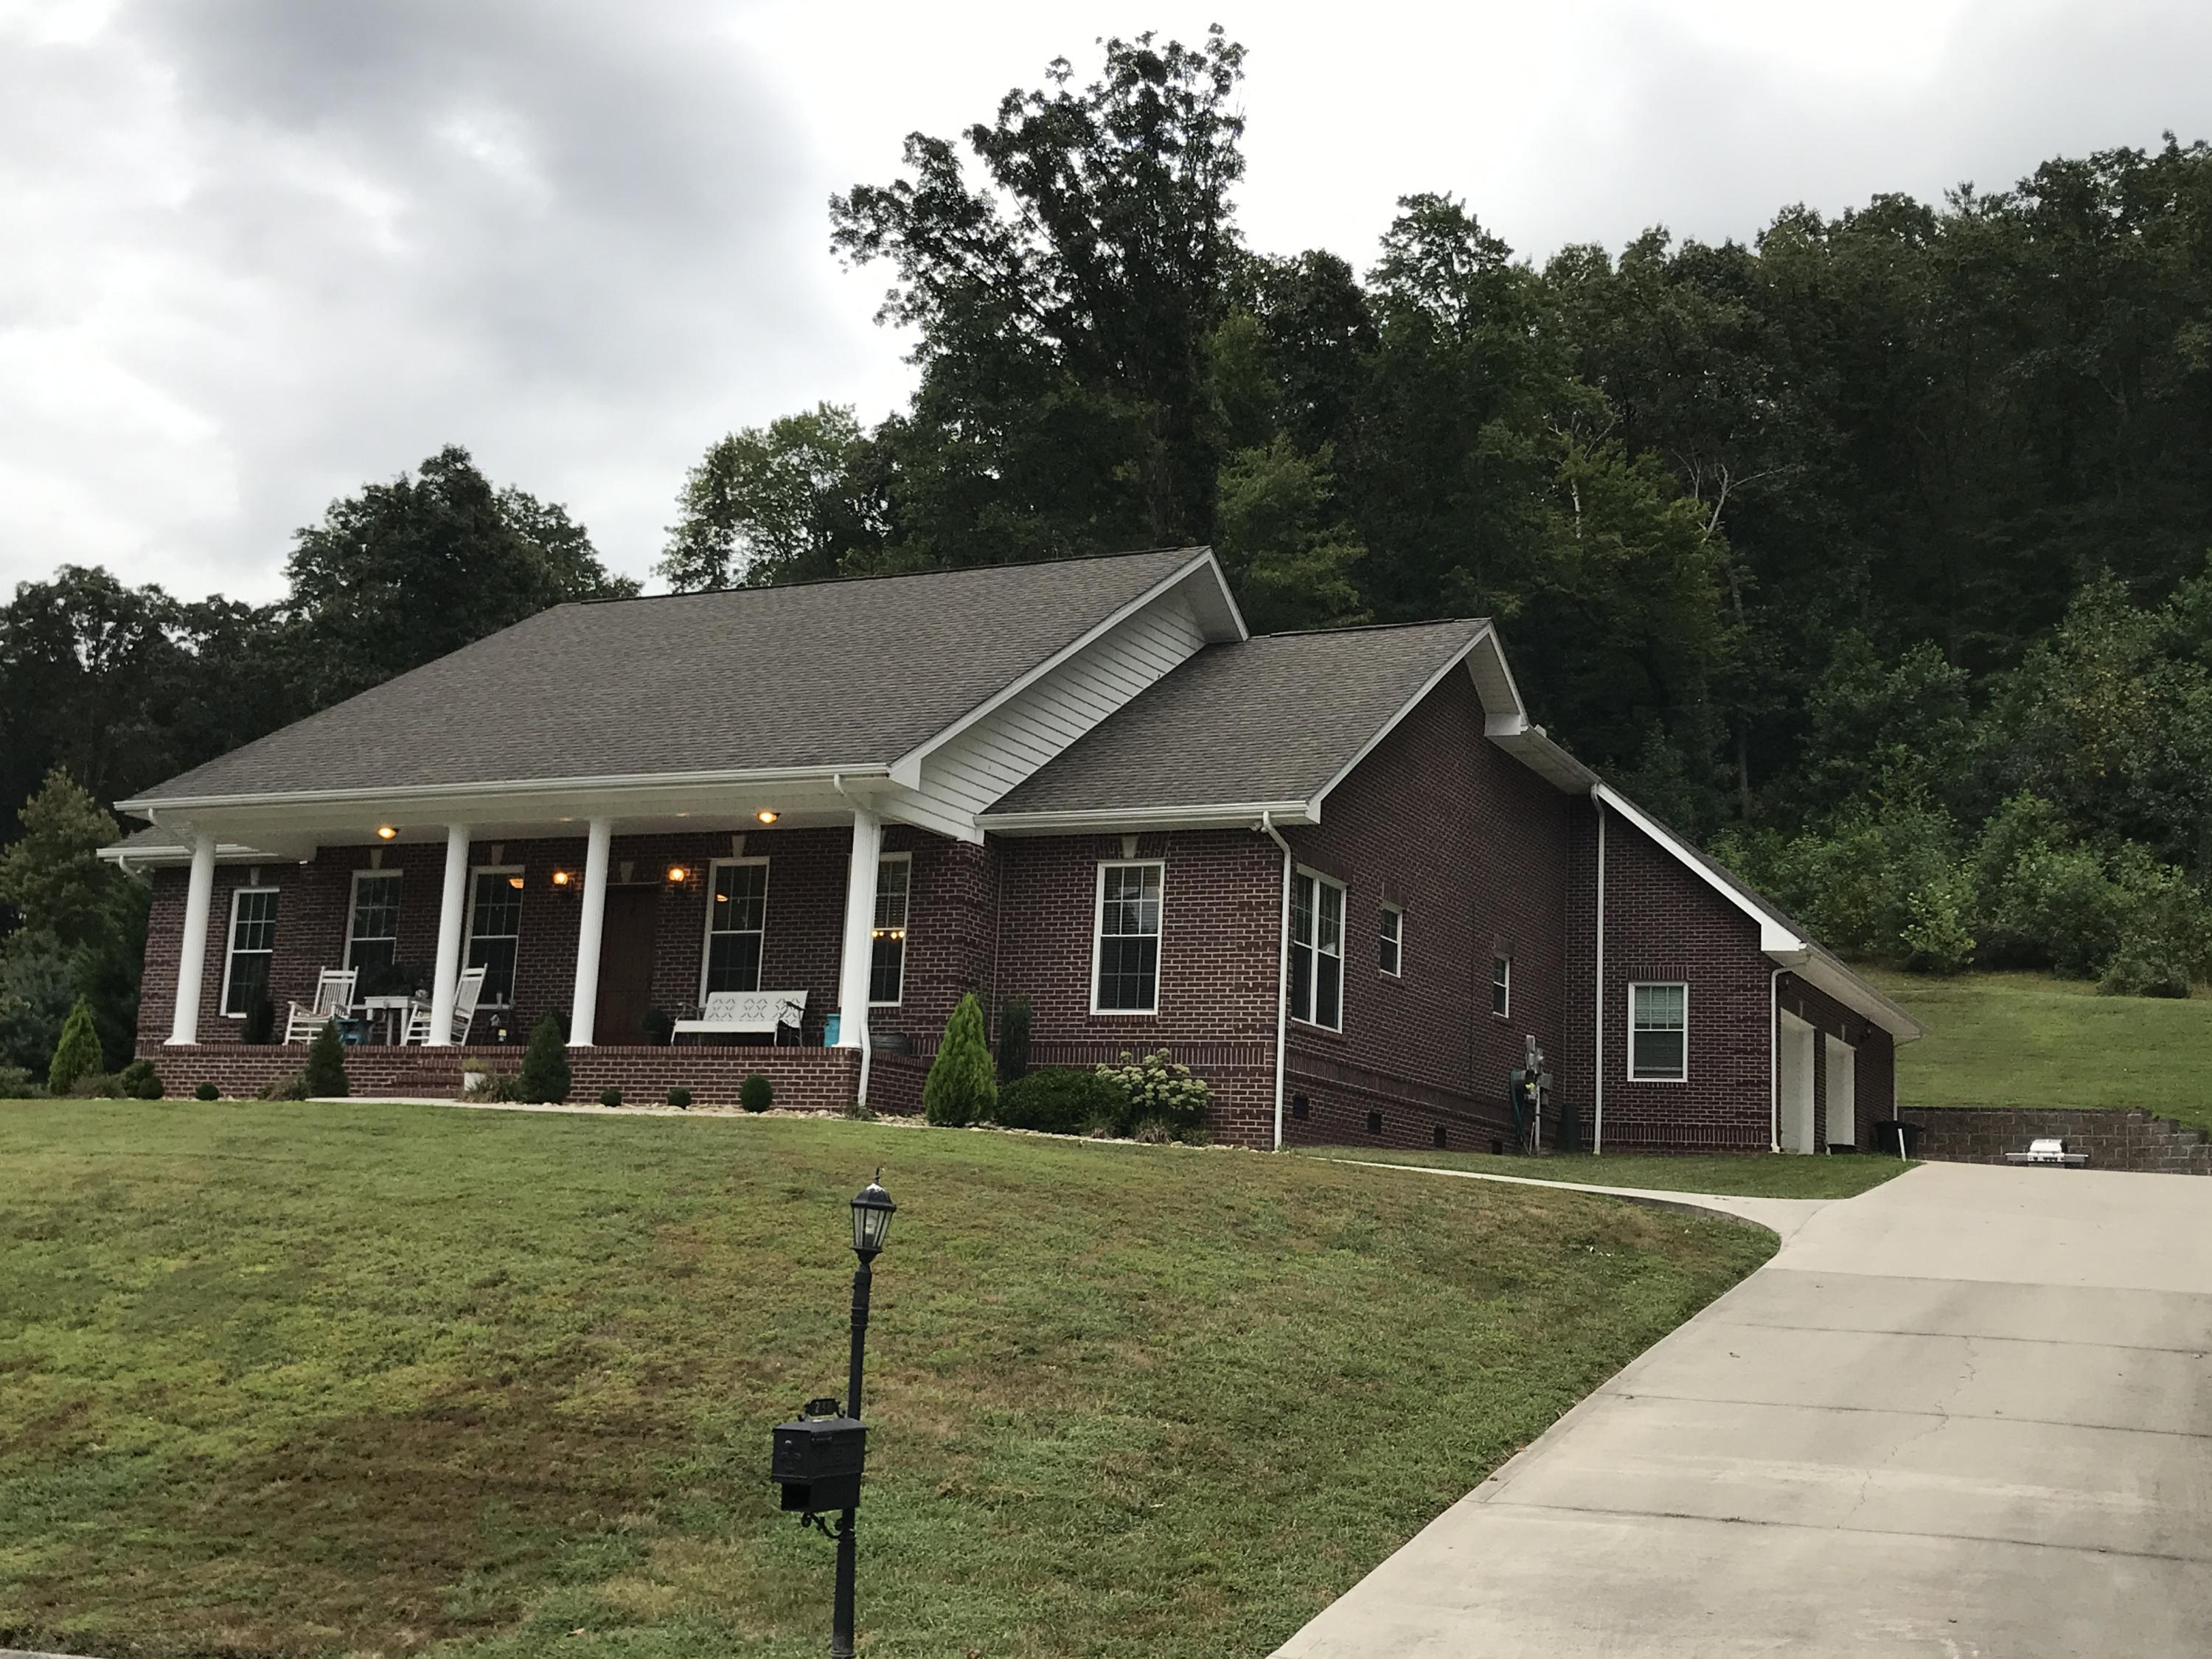 20190823033627351424000000-o Clinton anderson county homes for sale